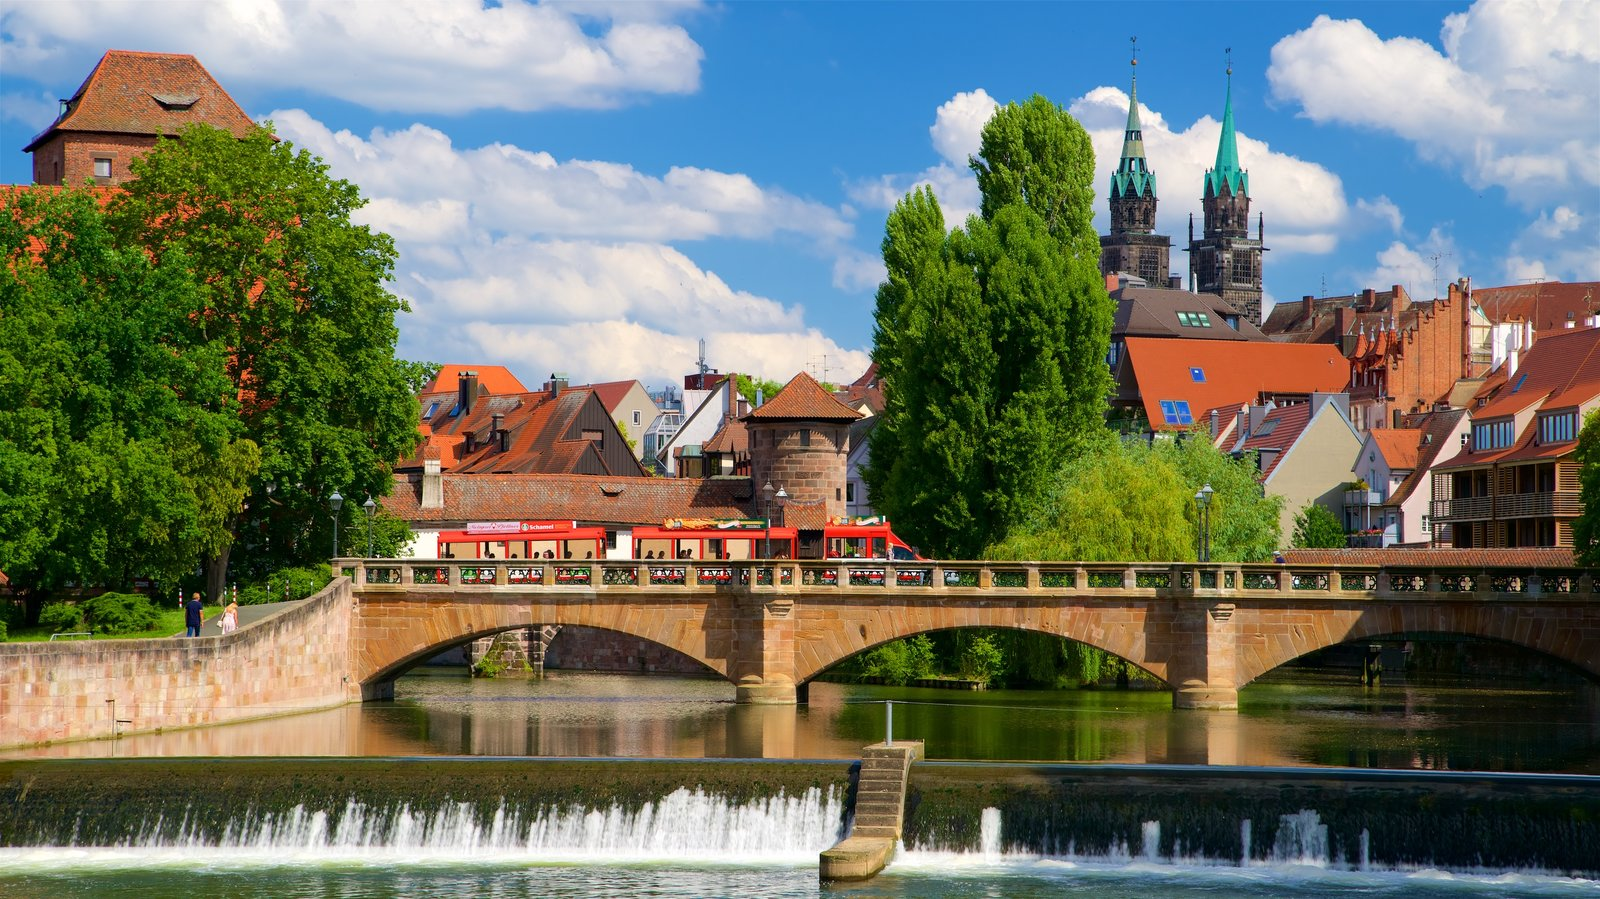 Nuremberg featuring a river or creek, a bridge and heritage elements